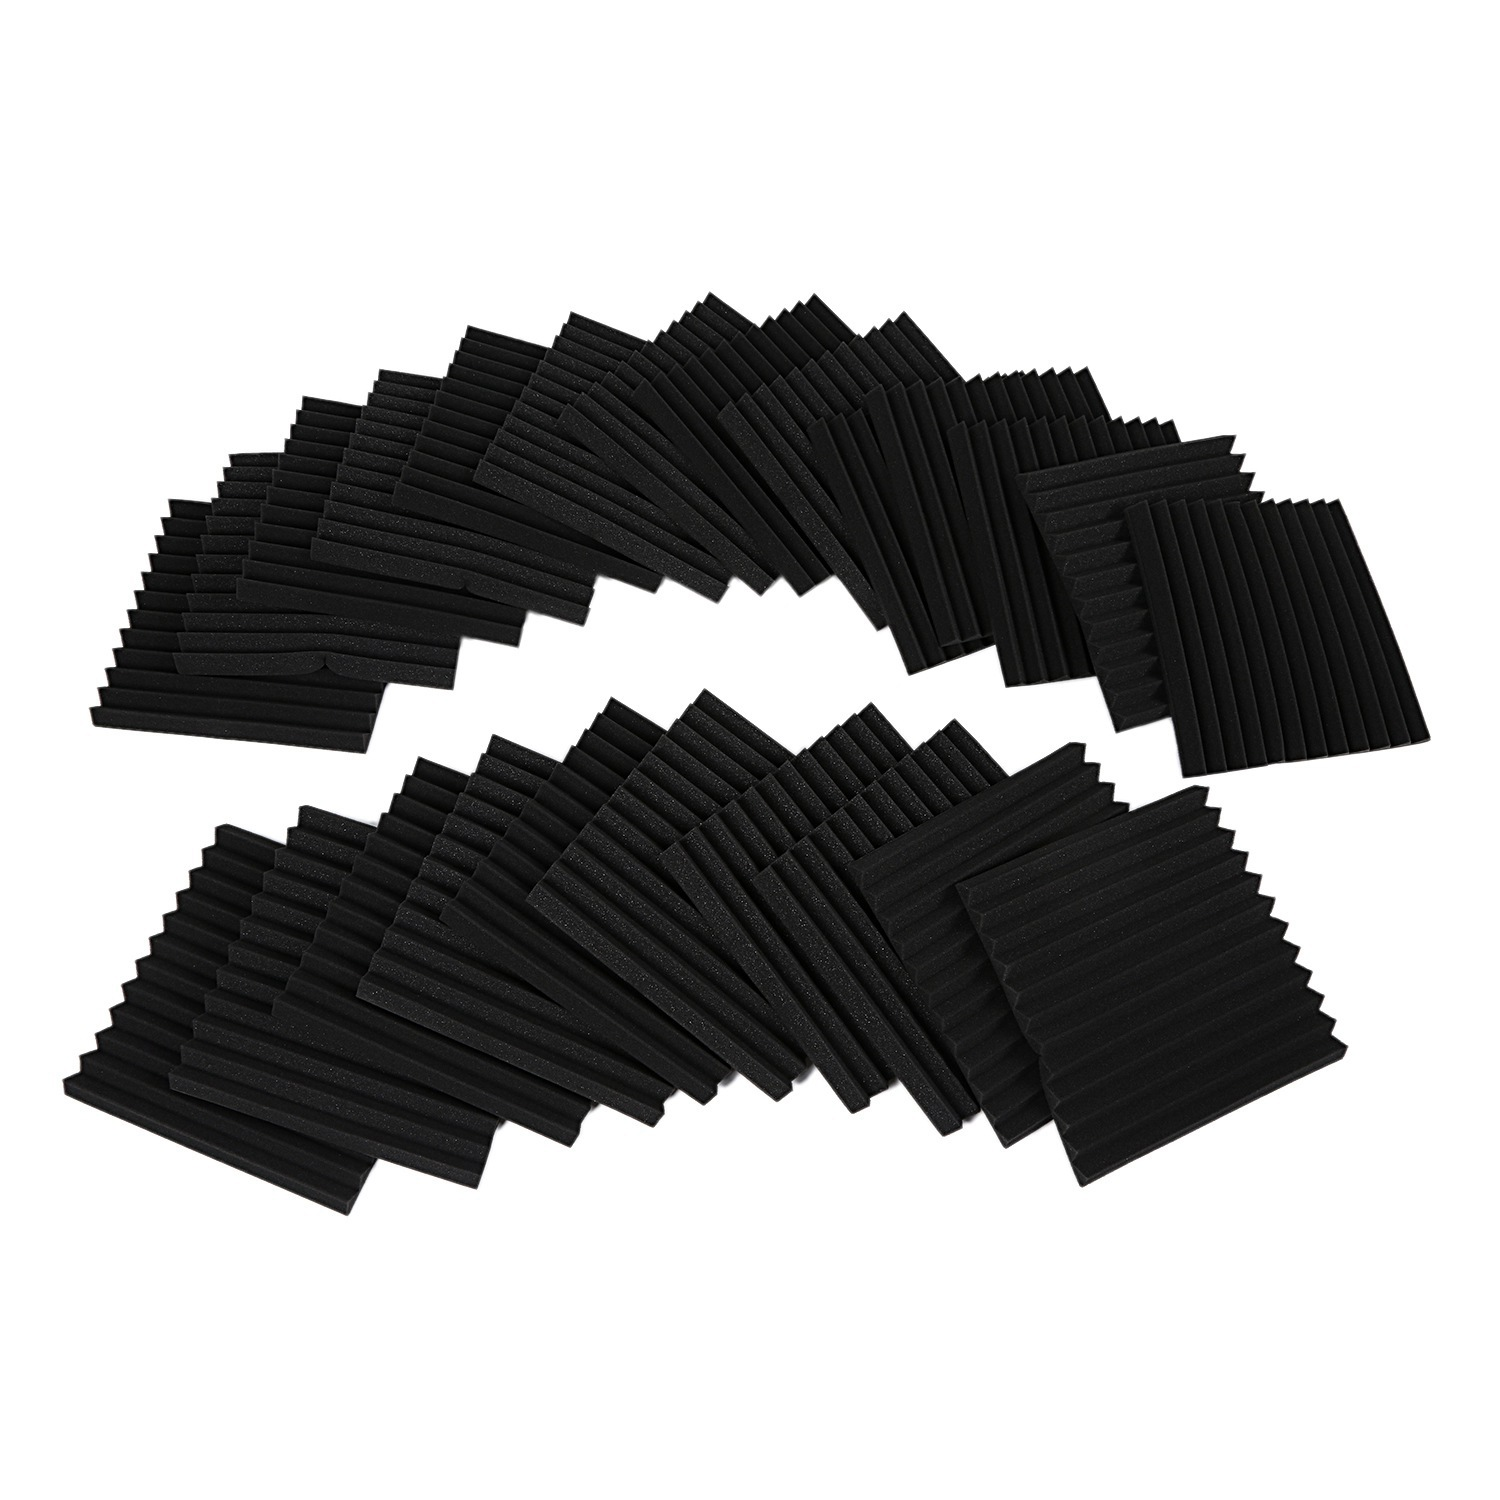 24 pcs Soundproofing Foam Studio Acoustic Panels Studio Foam Wedges 1 X 12 X 12 inch Soundproof Absorption Treatment Panel